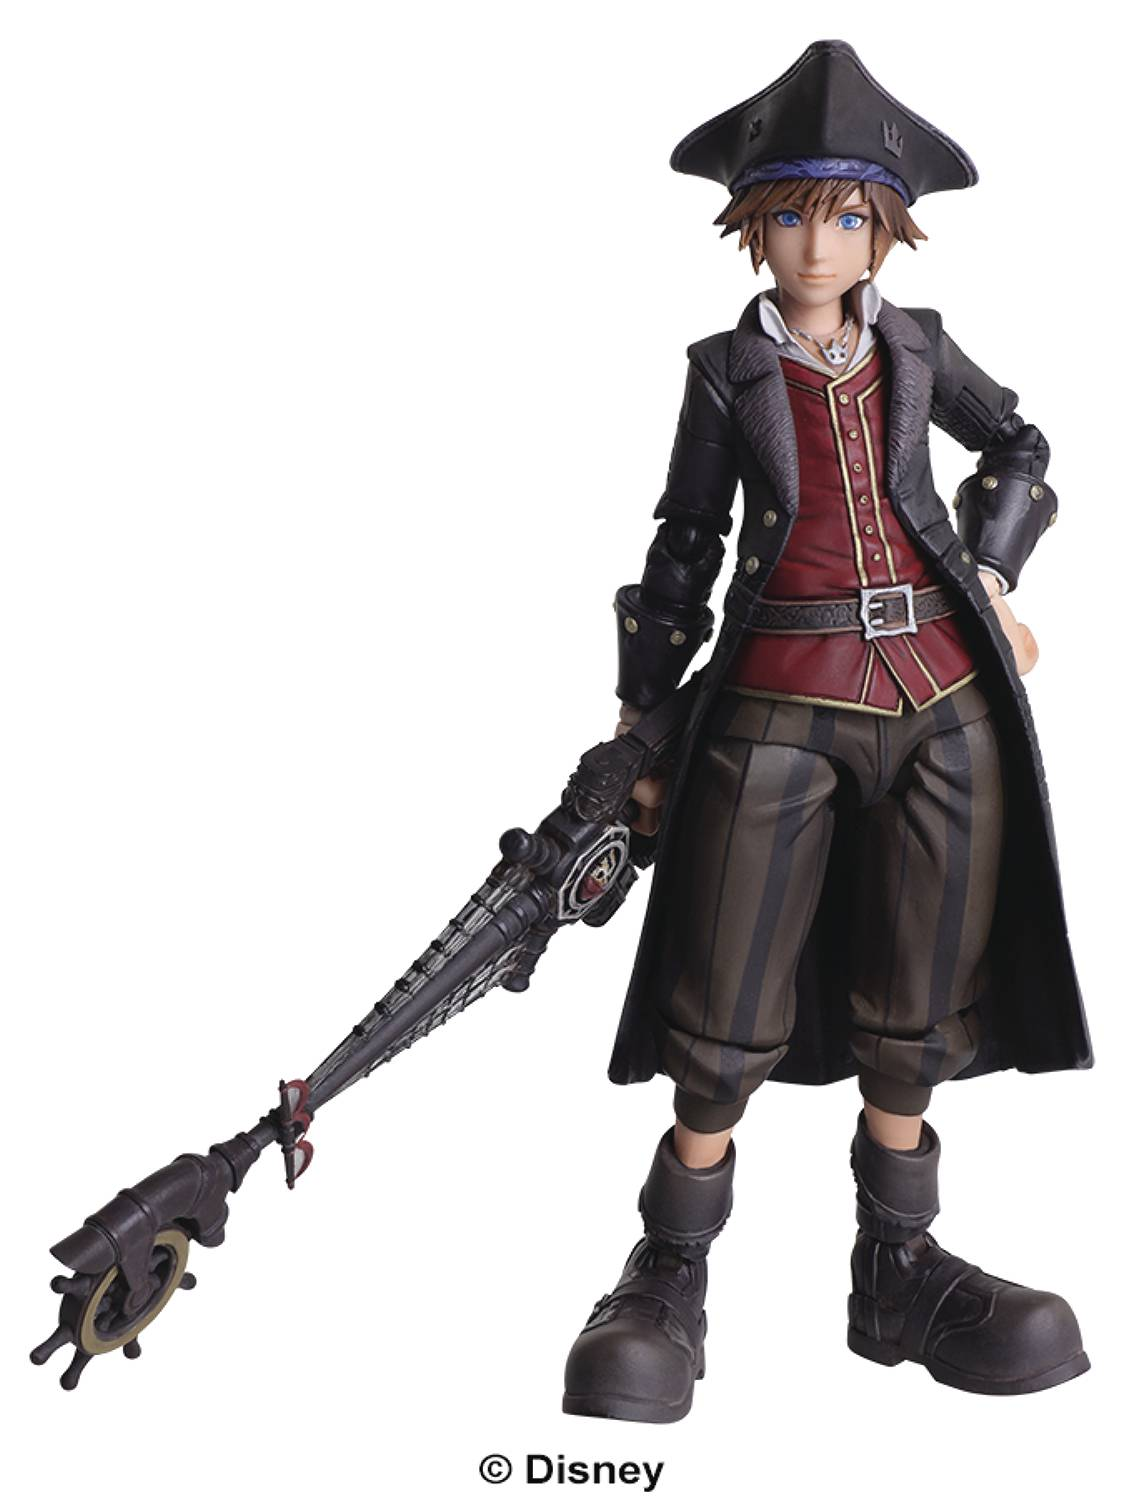 KINGDOM HEARTS III BRING ARTS SORA AF PIRATE VER